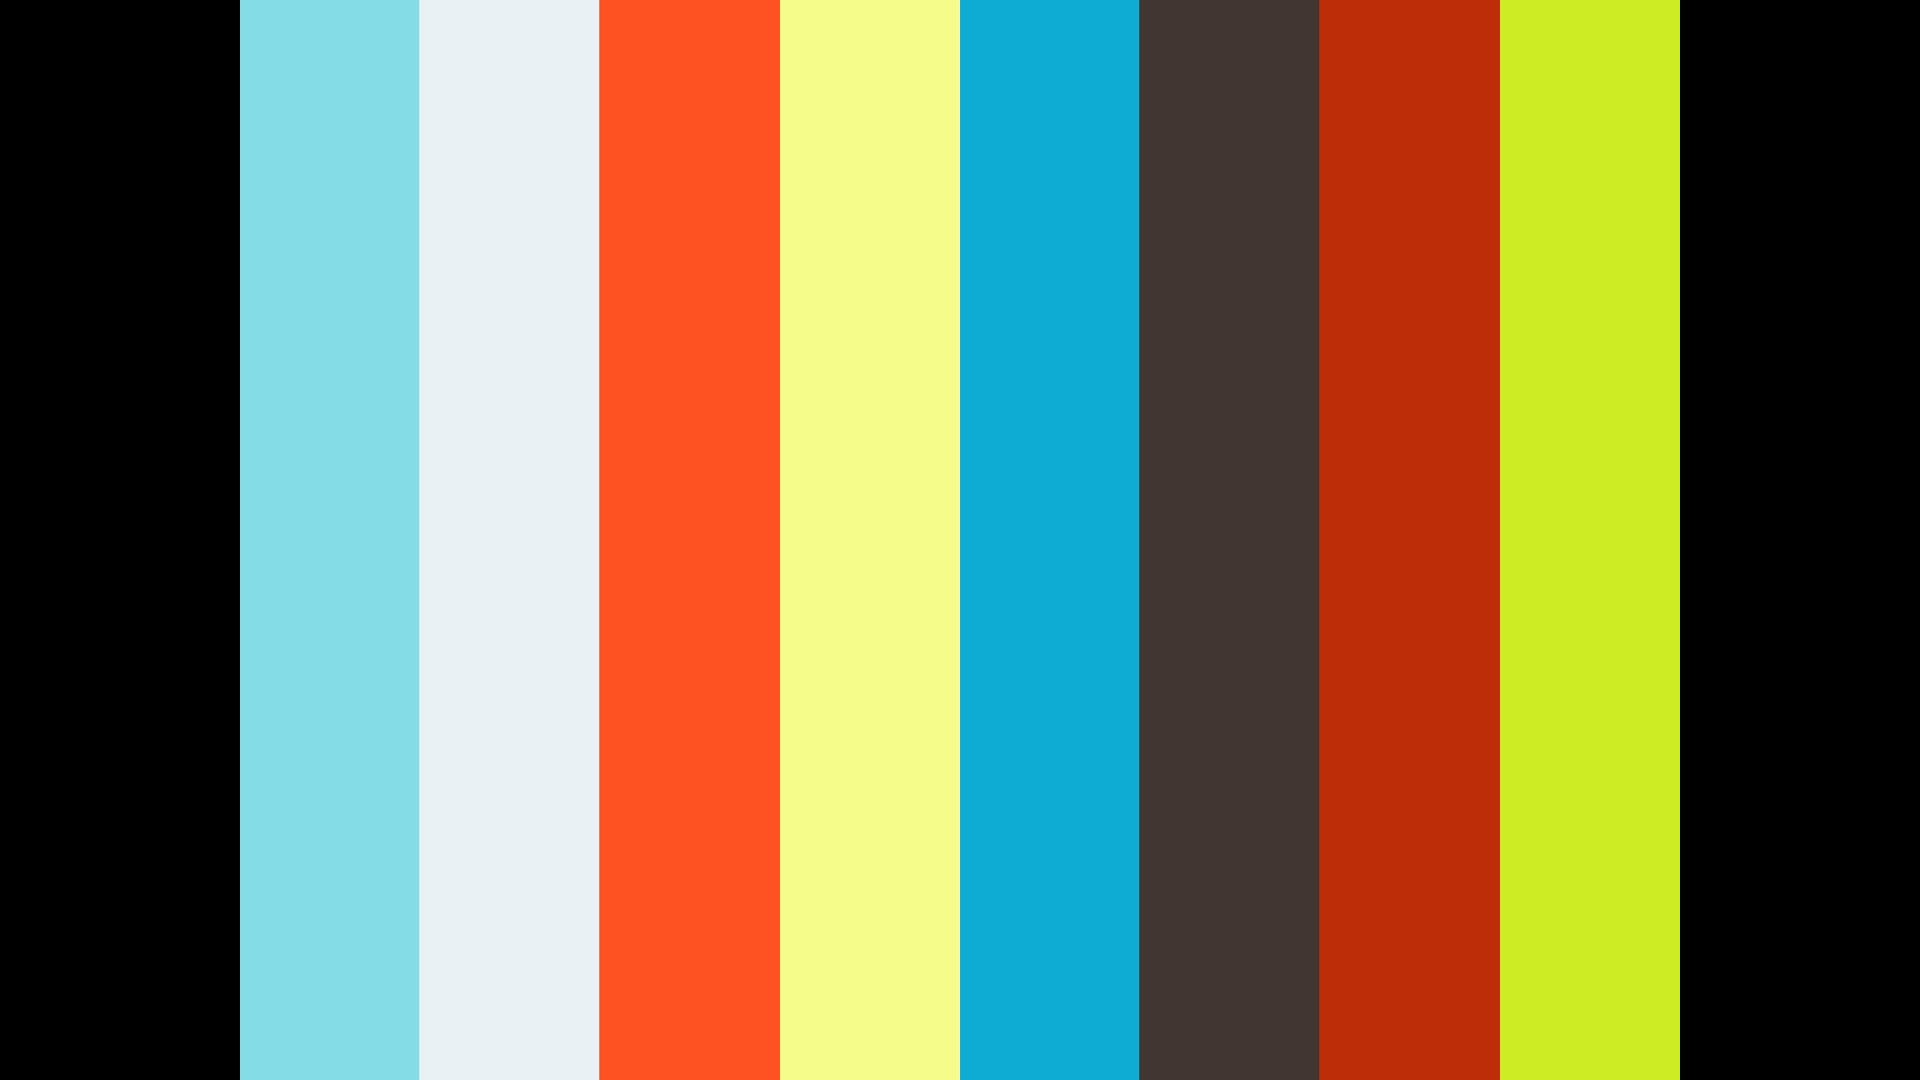 BUILDING FAITH 7-10-16